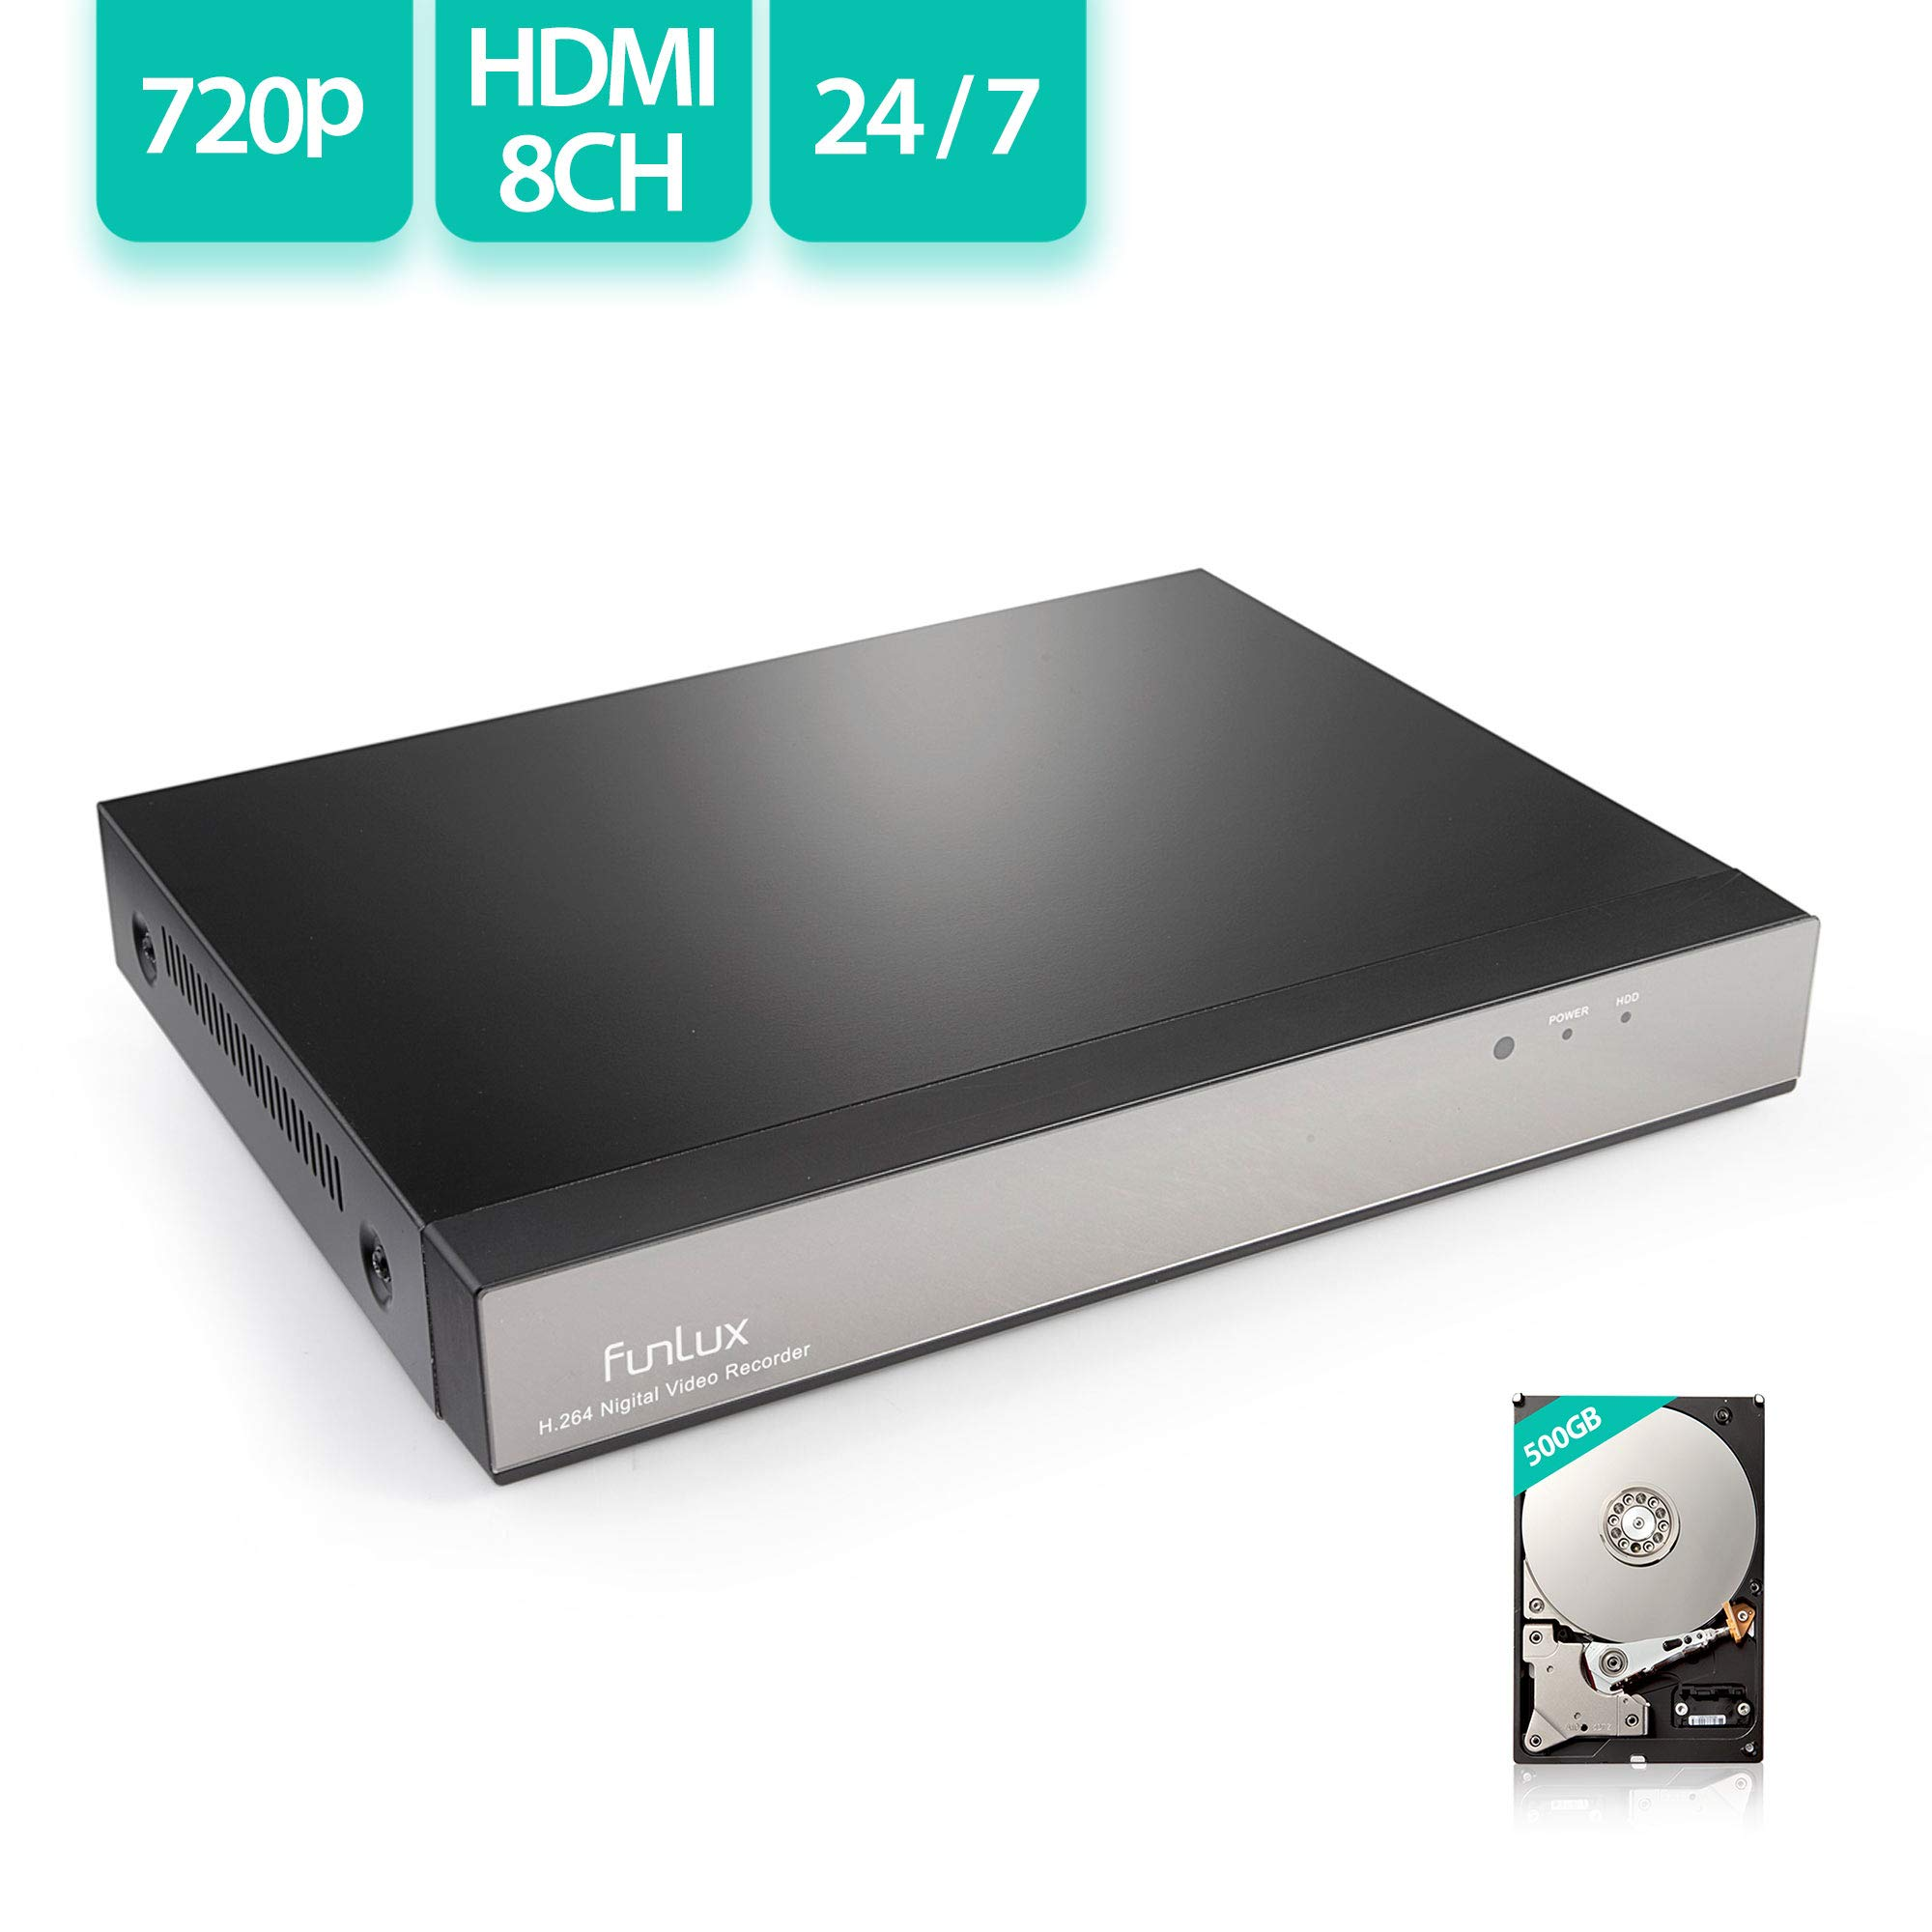 Funlux 720P HD 8CH NVR w/ 500GB Hard Drive(Compatible with Zmodo, SHO,Funlux Cameras)